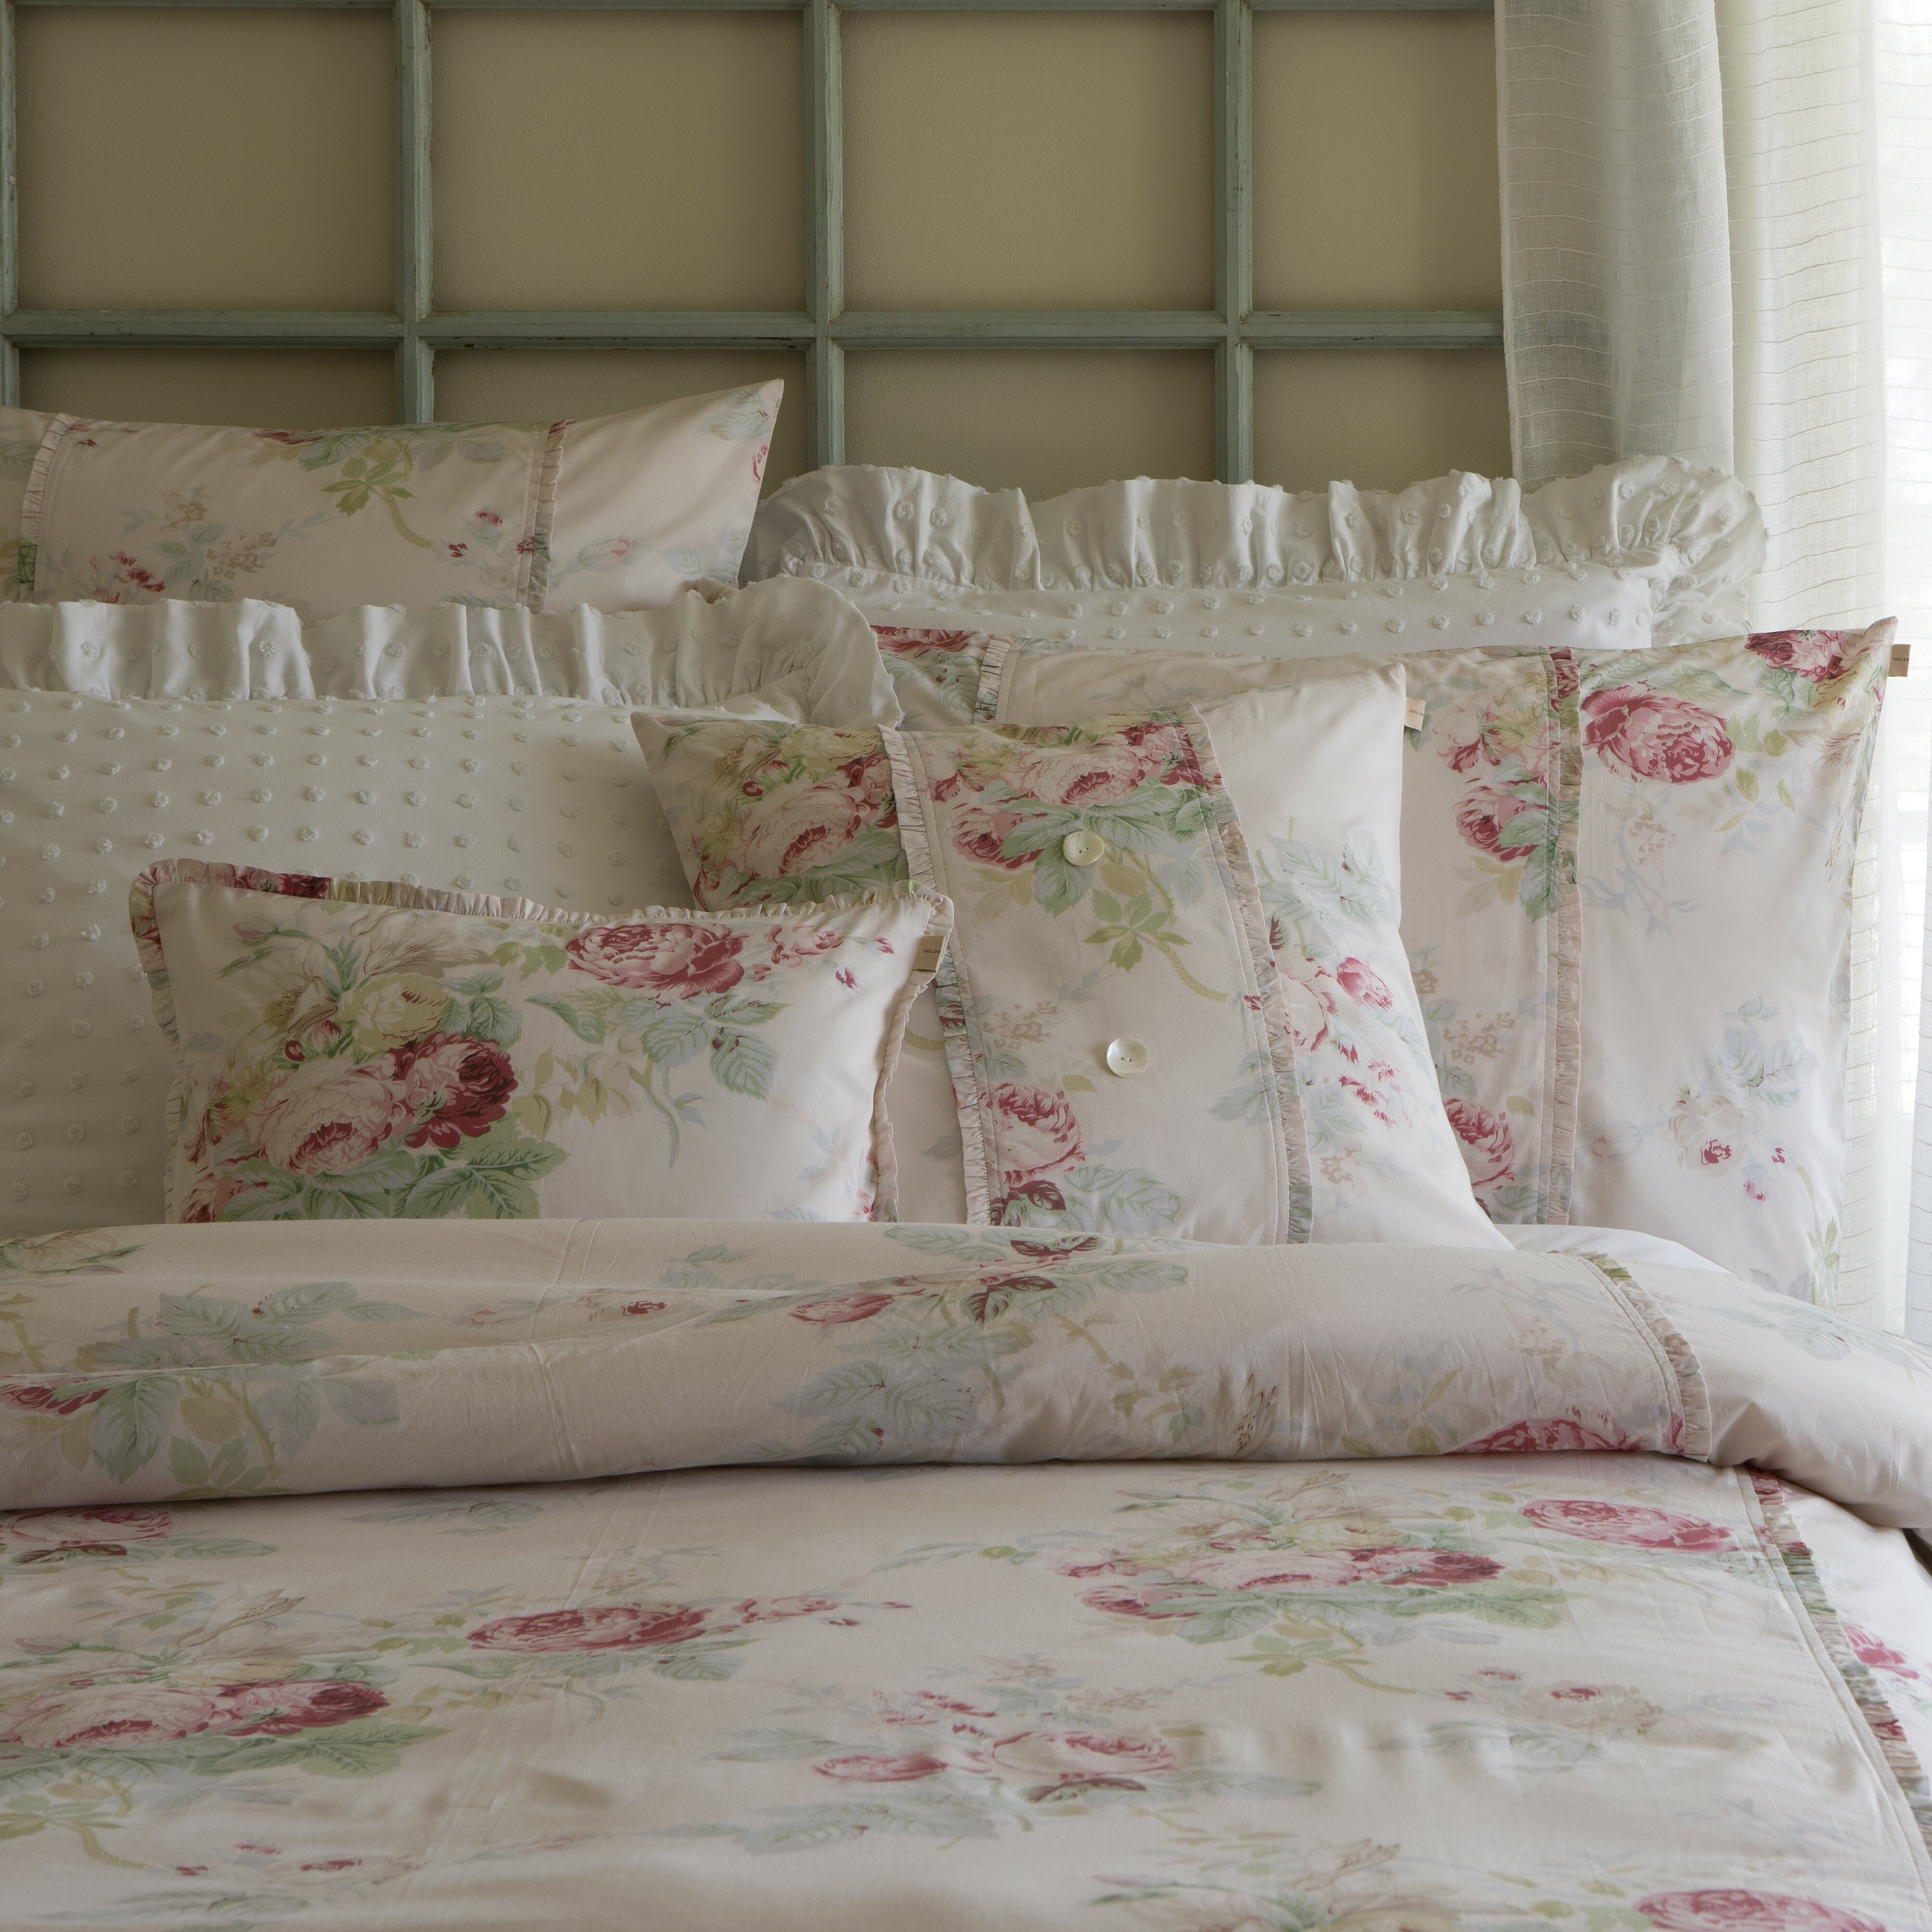 bed king sheets sets charming duvet design pottery bring covers barns sale your bedding pattern barn chic for paisley bedroom on adjustment pillows